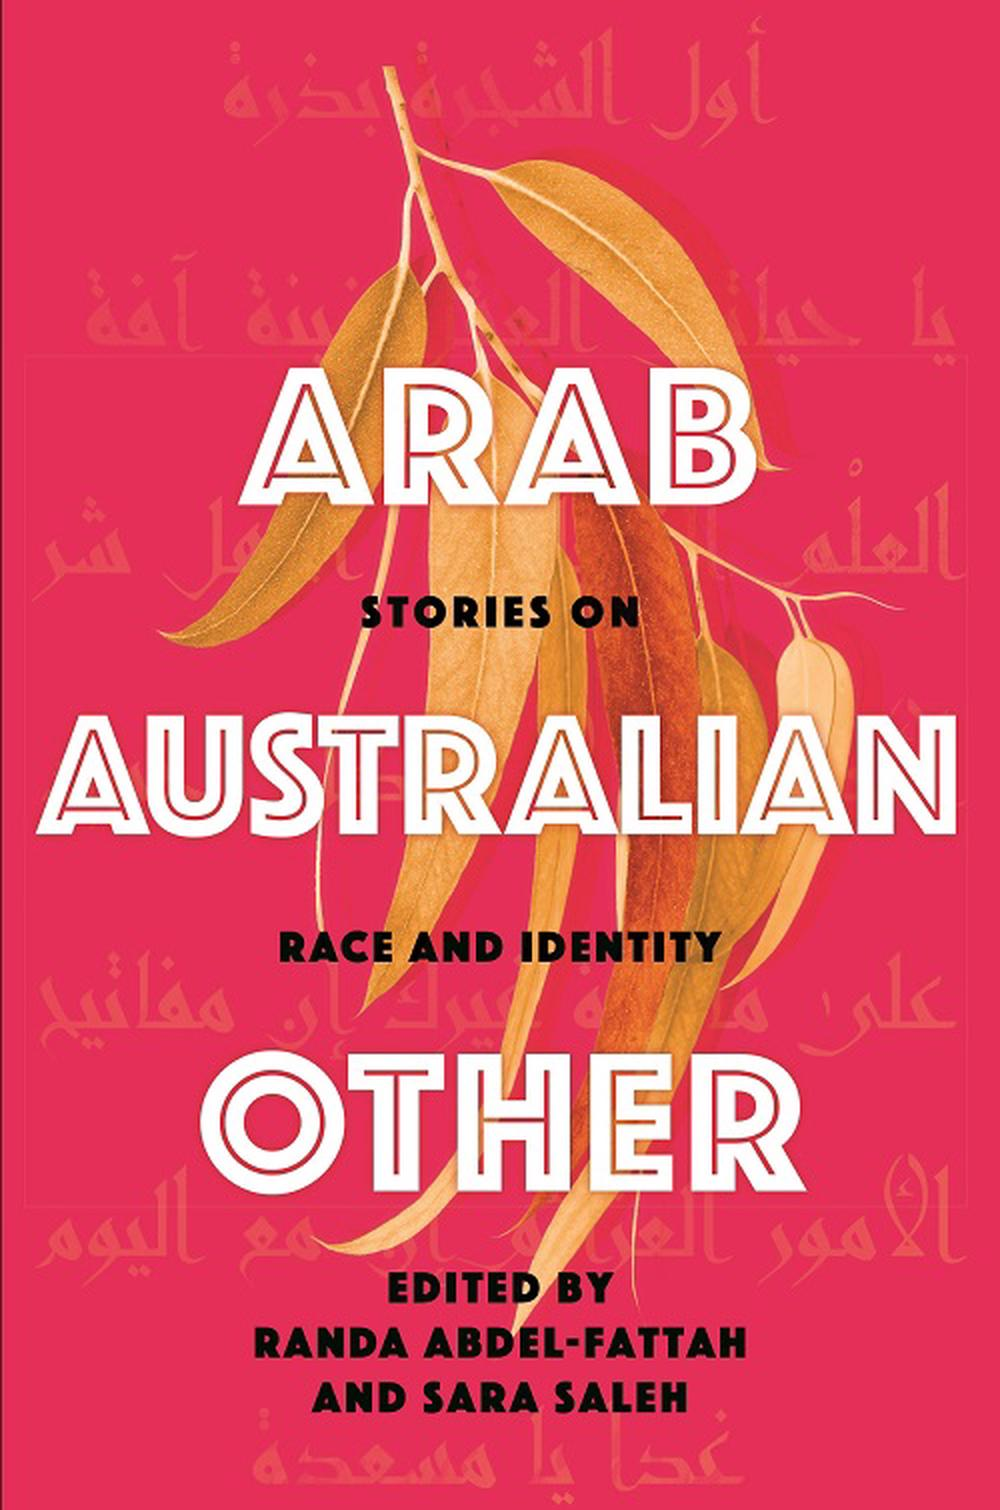 Arab Australian Other: Stories of Race and Identity